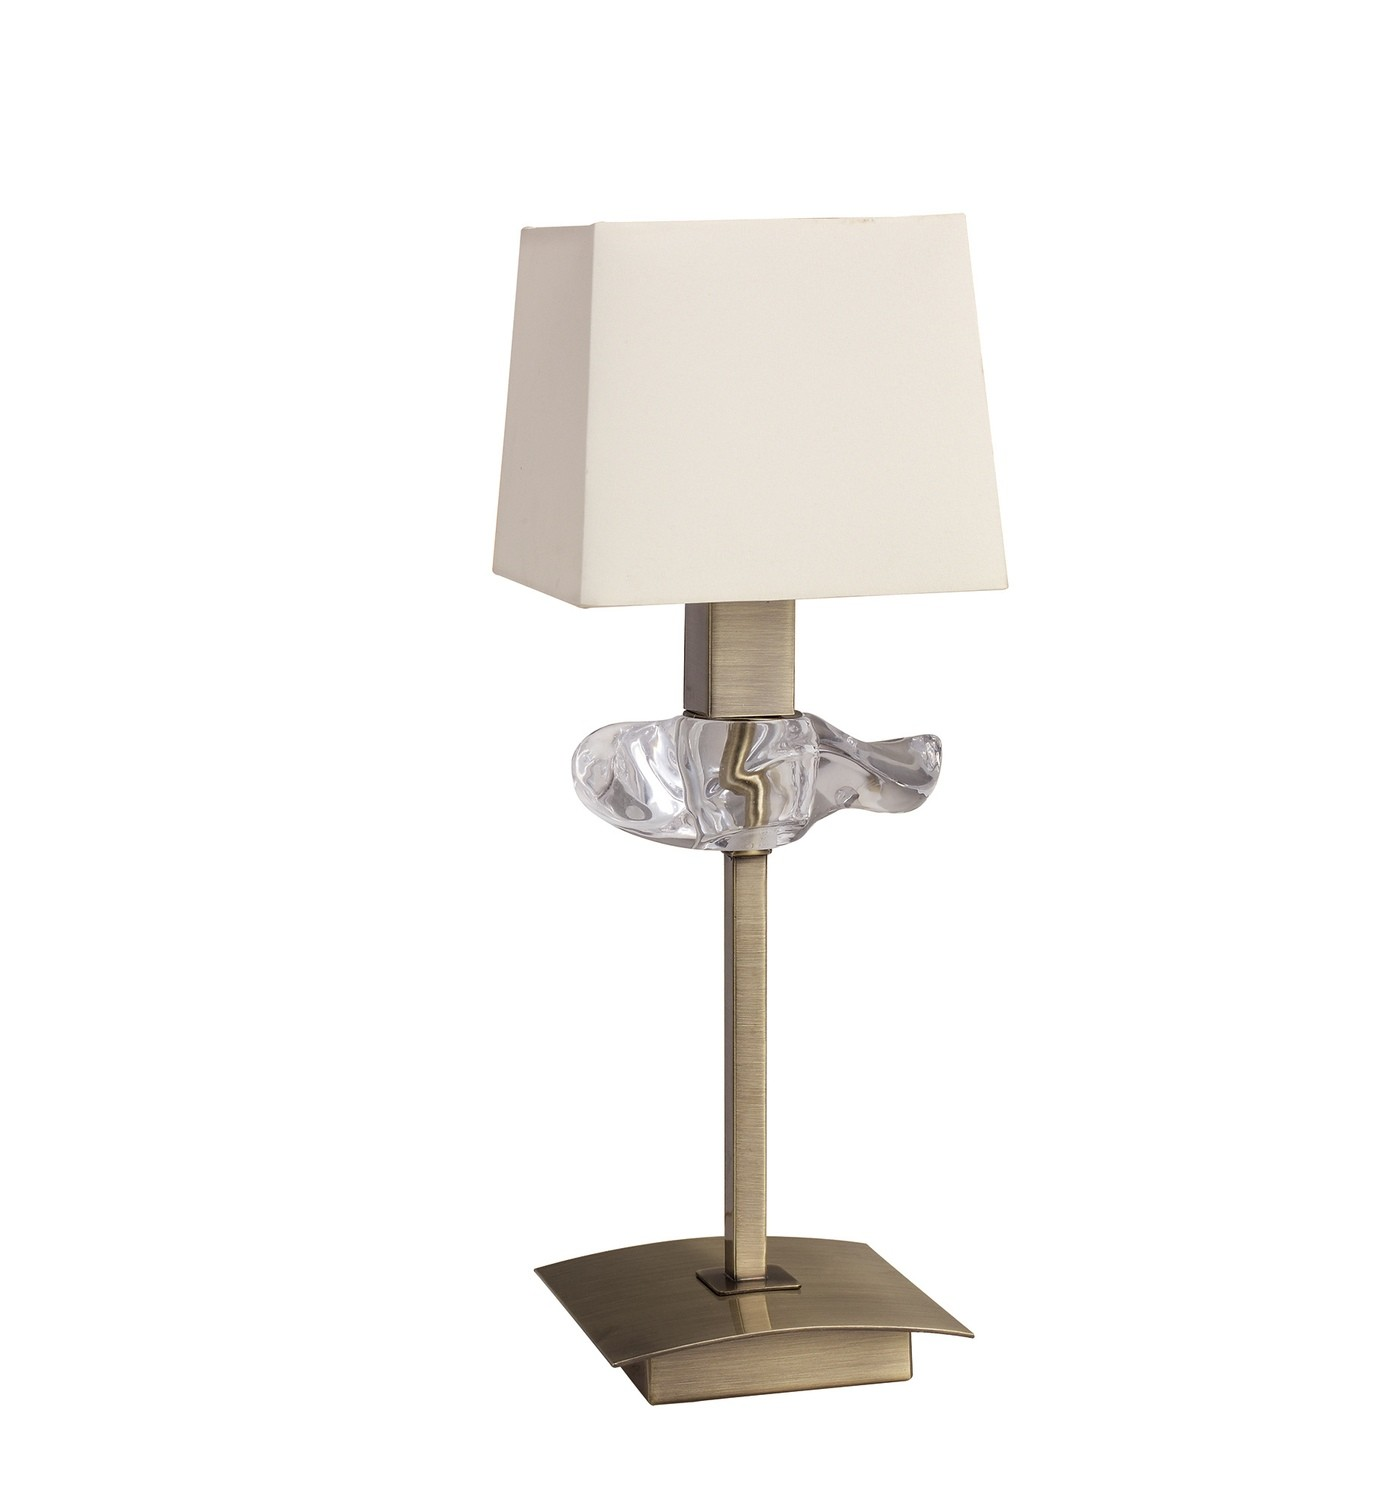 Akira Table Lamp 1 Light E14, Antique Brass With Cream Shade